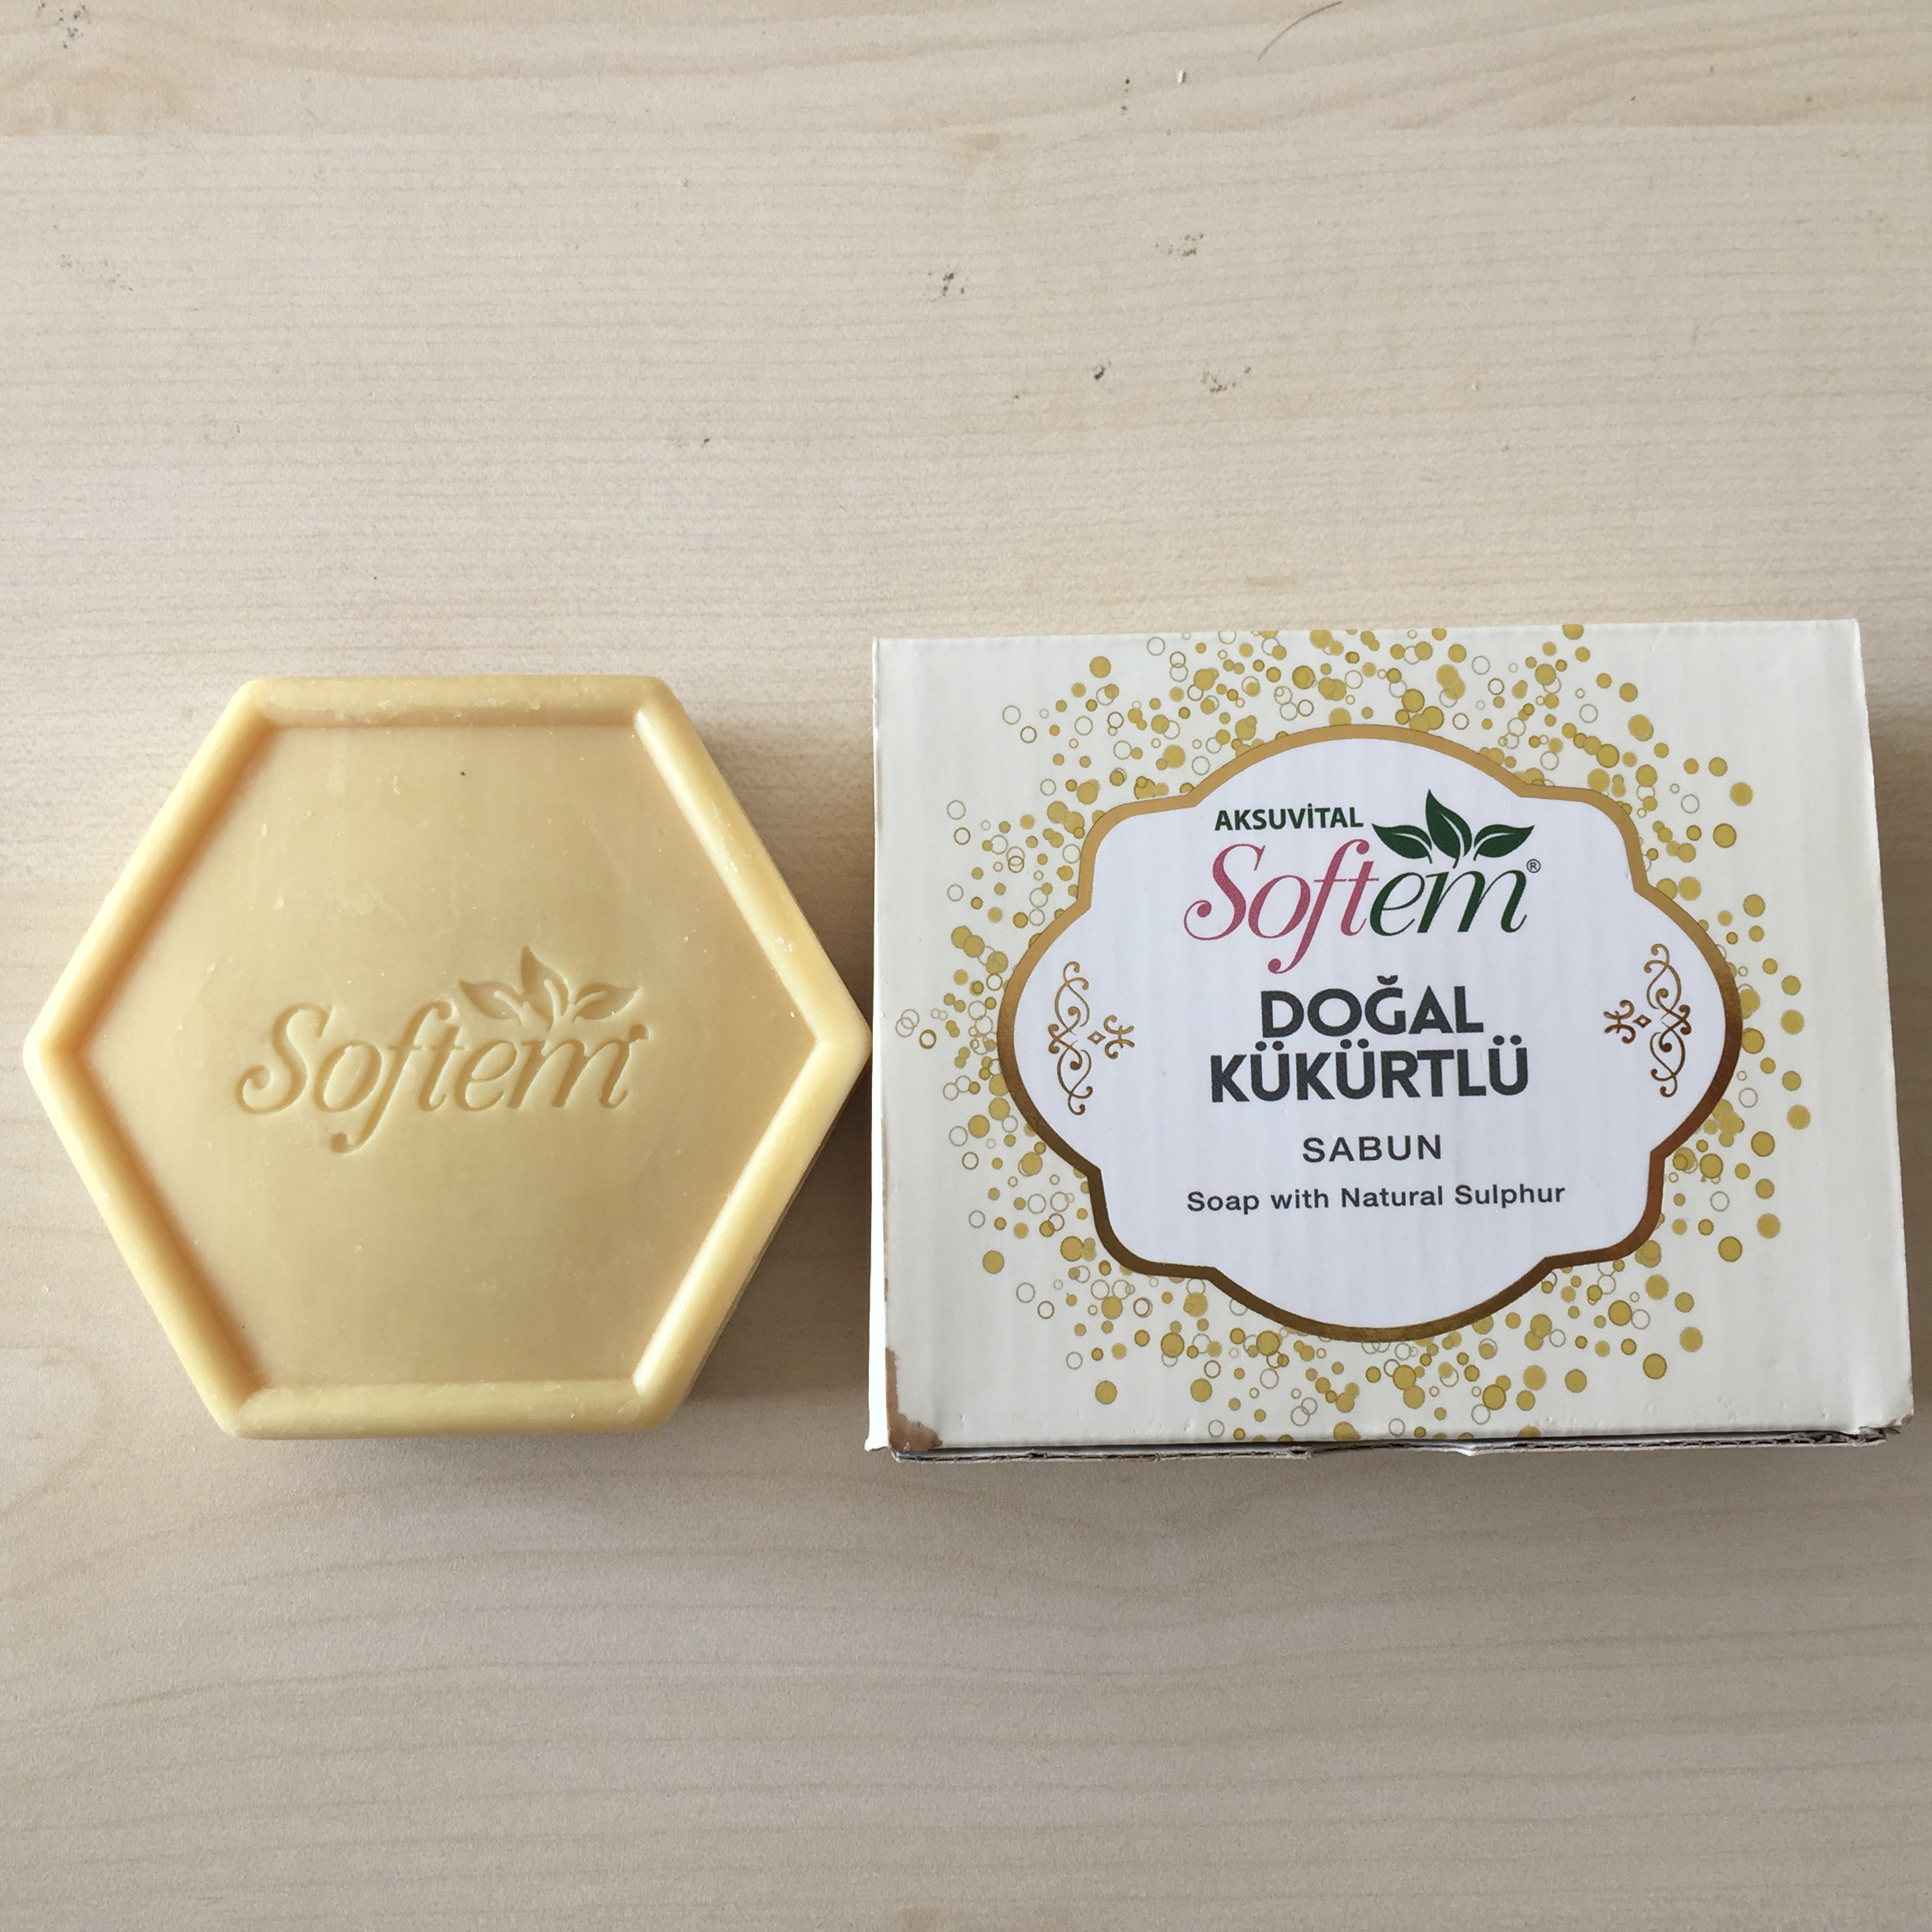 Best Soap Bar For Acne Suppliers And Sabun Kojic Perpect Whitening Manufacturers At